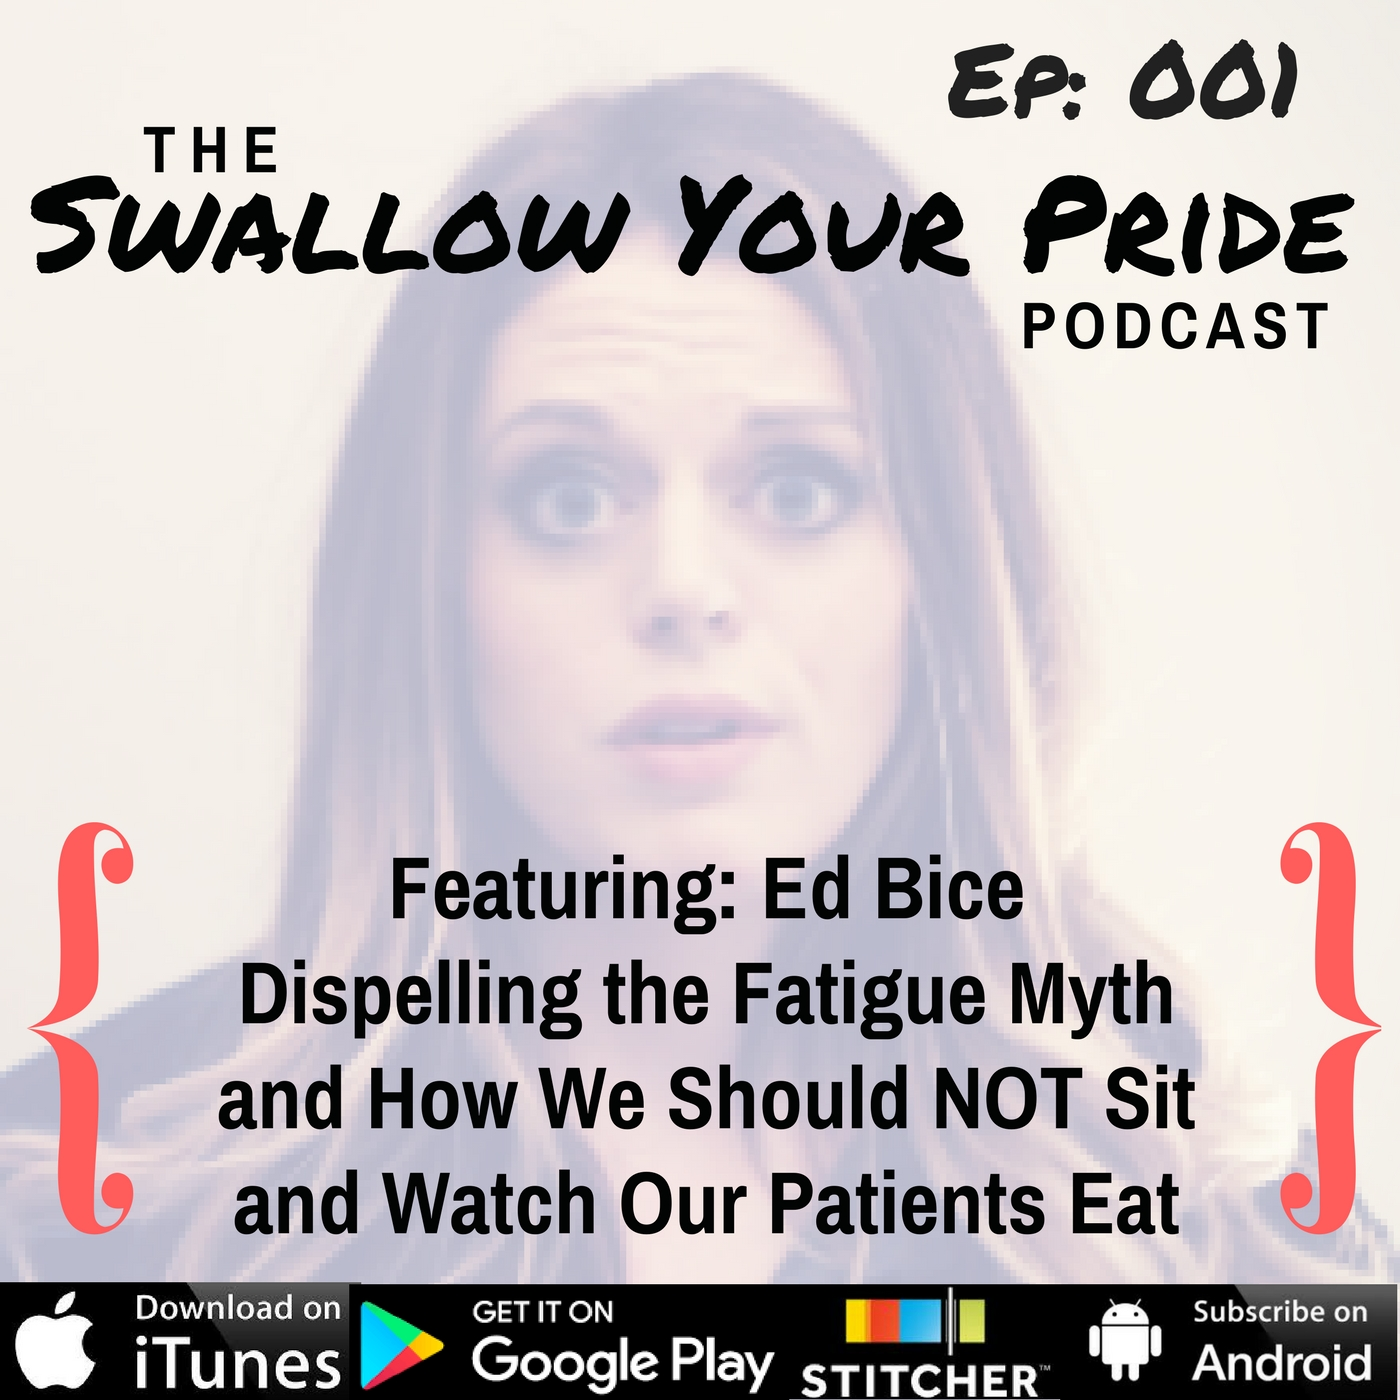 001 – Ed Bice, M.Ed., CCC-SLP – Dispelling the Fatigue Myth and How We Should NOT Sit and Watch Our Patients Eat